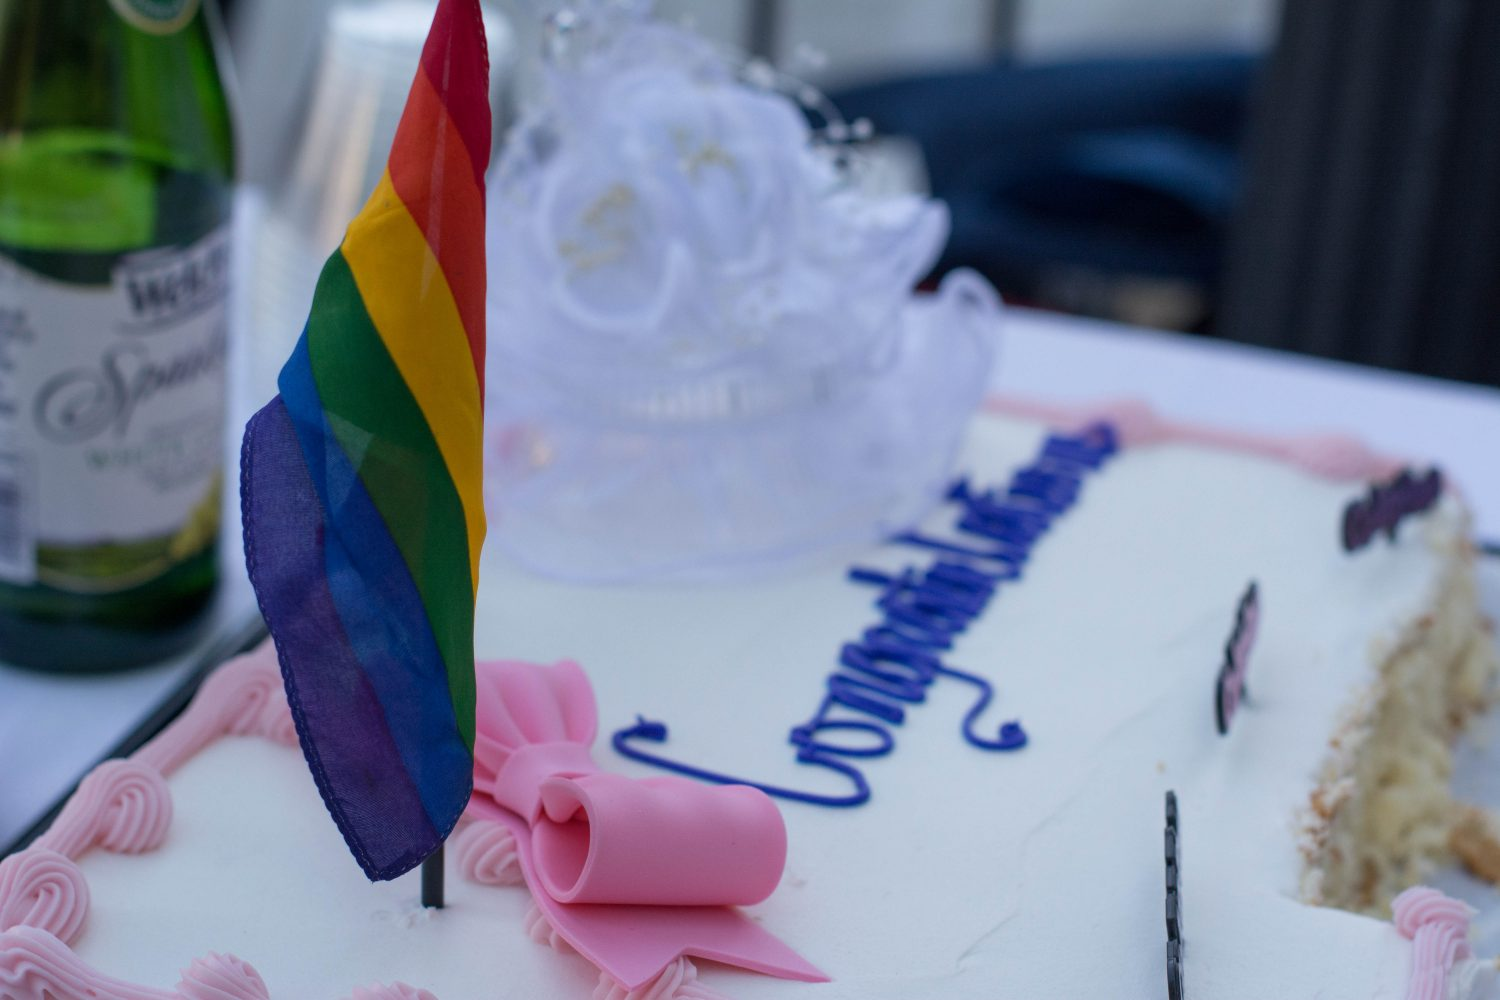 United Church of Gainesville helps same-sex couples celebrate their new marriage licenses by hosting wedding receptions outside the Alachua County Courthouse on E. University Ave. on Tuesday, Jan. 6.